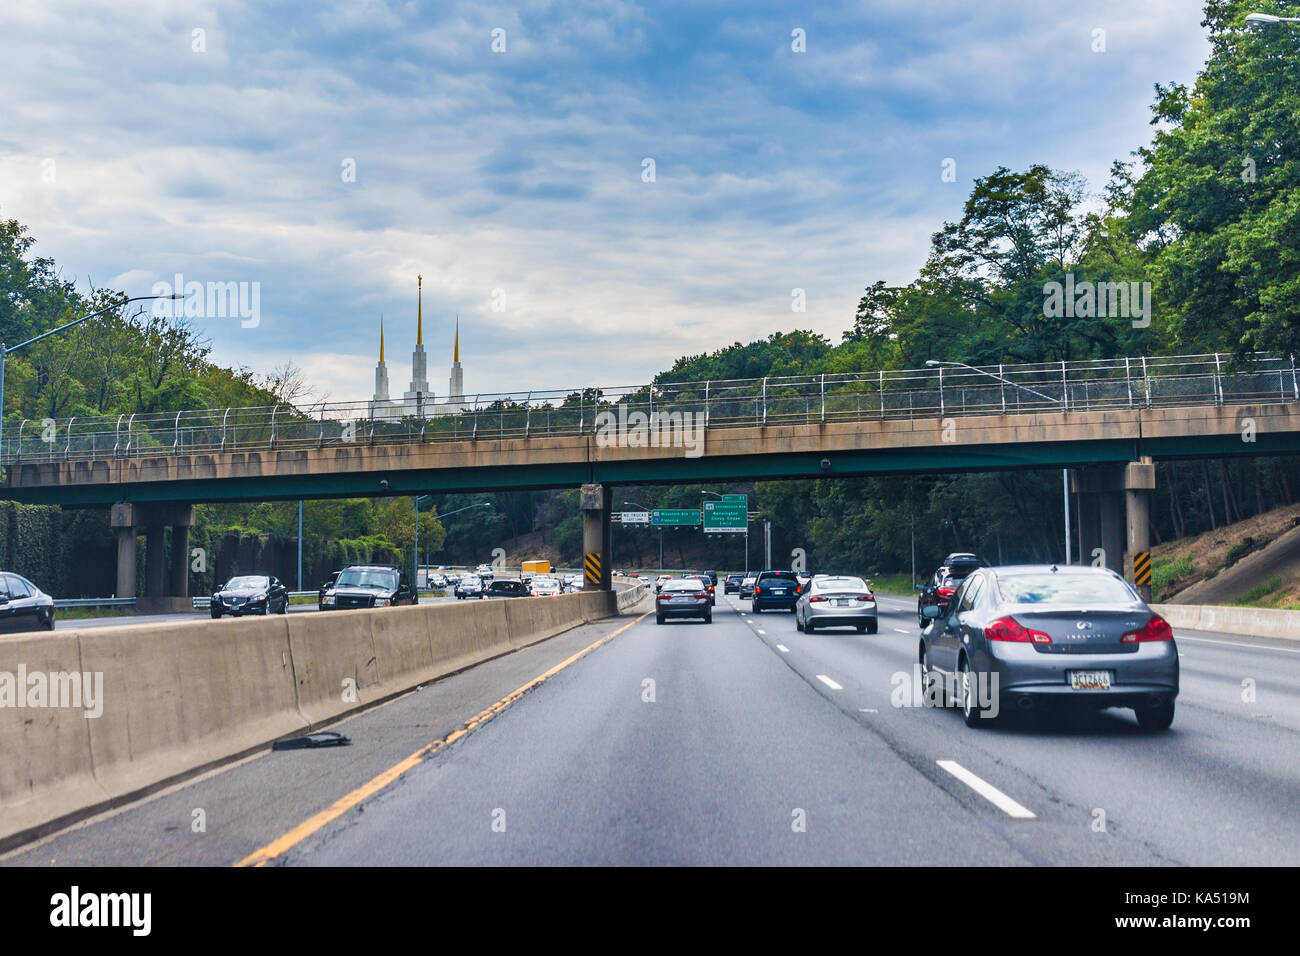 Kensington, USA - September 16, 2017: Highway with Church of Jesus Christ of Latter-day Saints Mormon Temple in Stock Photo